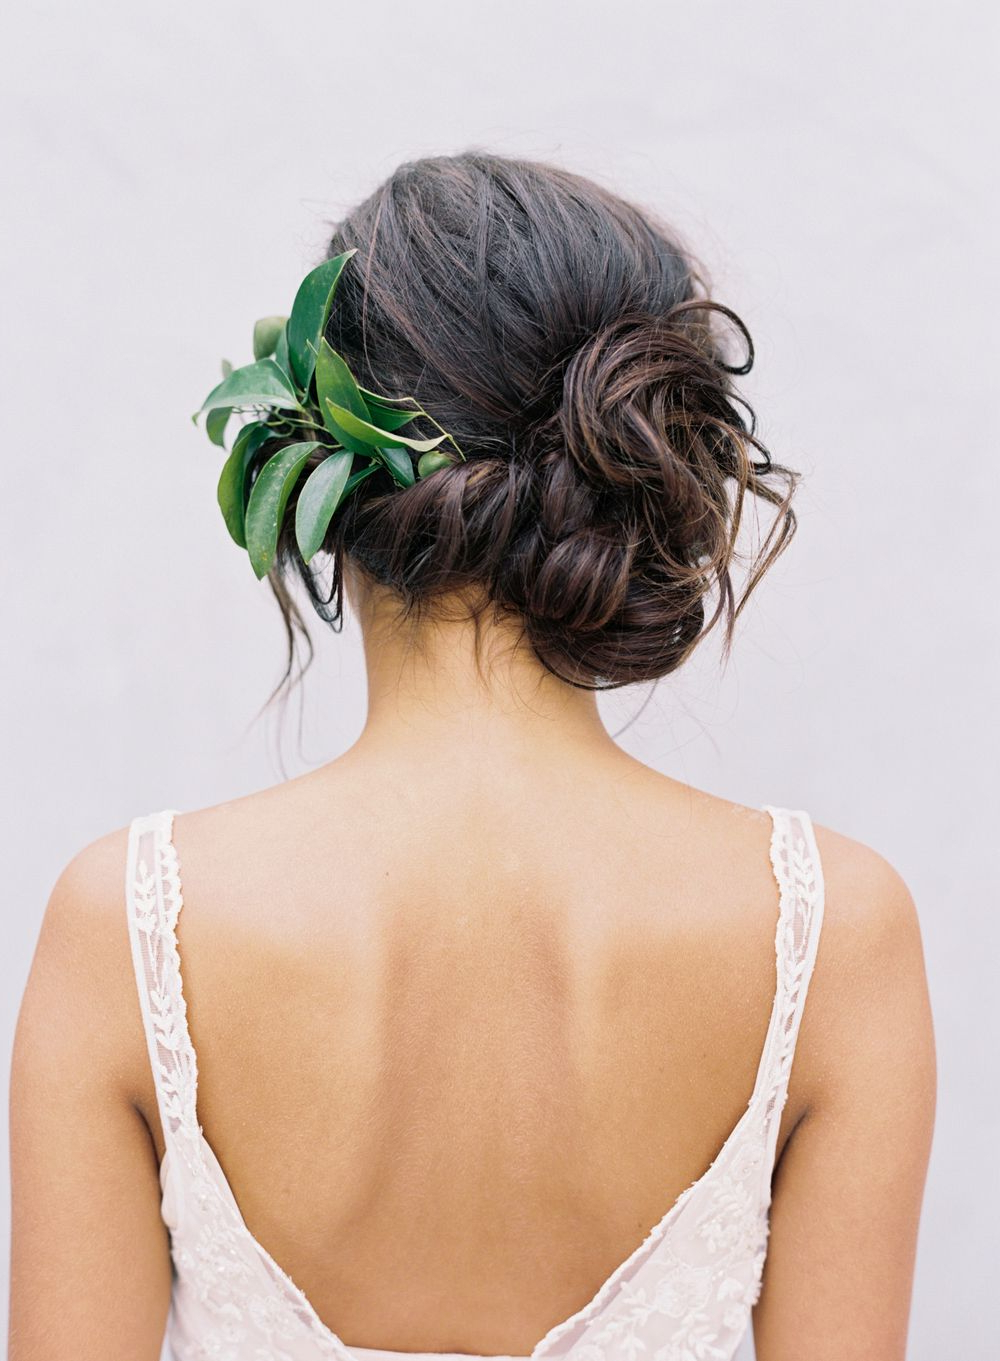 Most Up To Date Side Bun Prom Hairstyles With Orchids Intended For A Classic Wedding Updo, Loose Side Bun, Romantic Side Swept Updo (View 11 of 20)